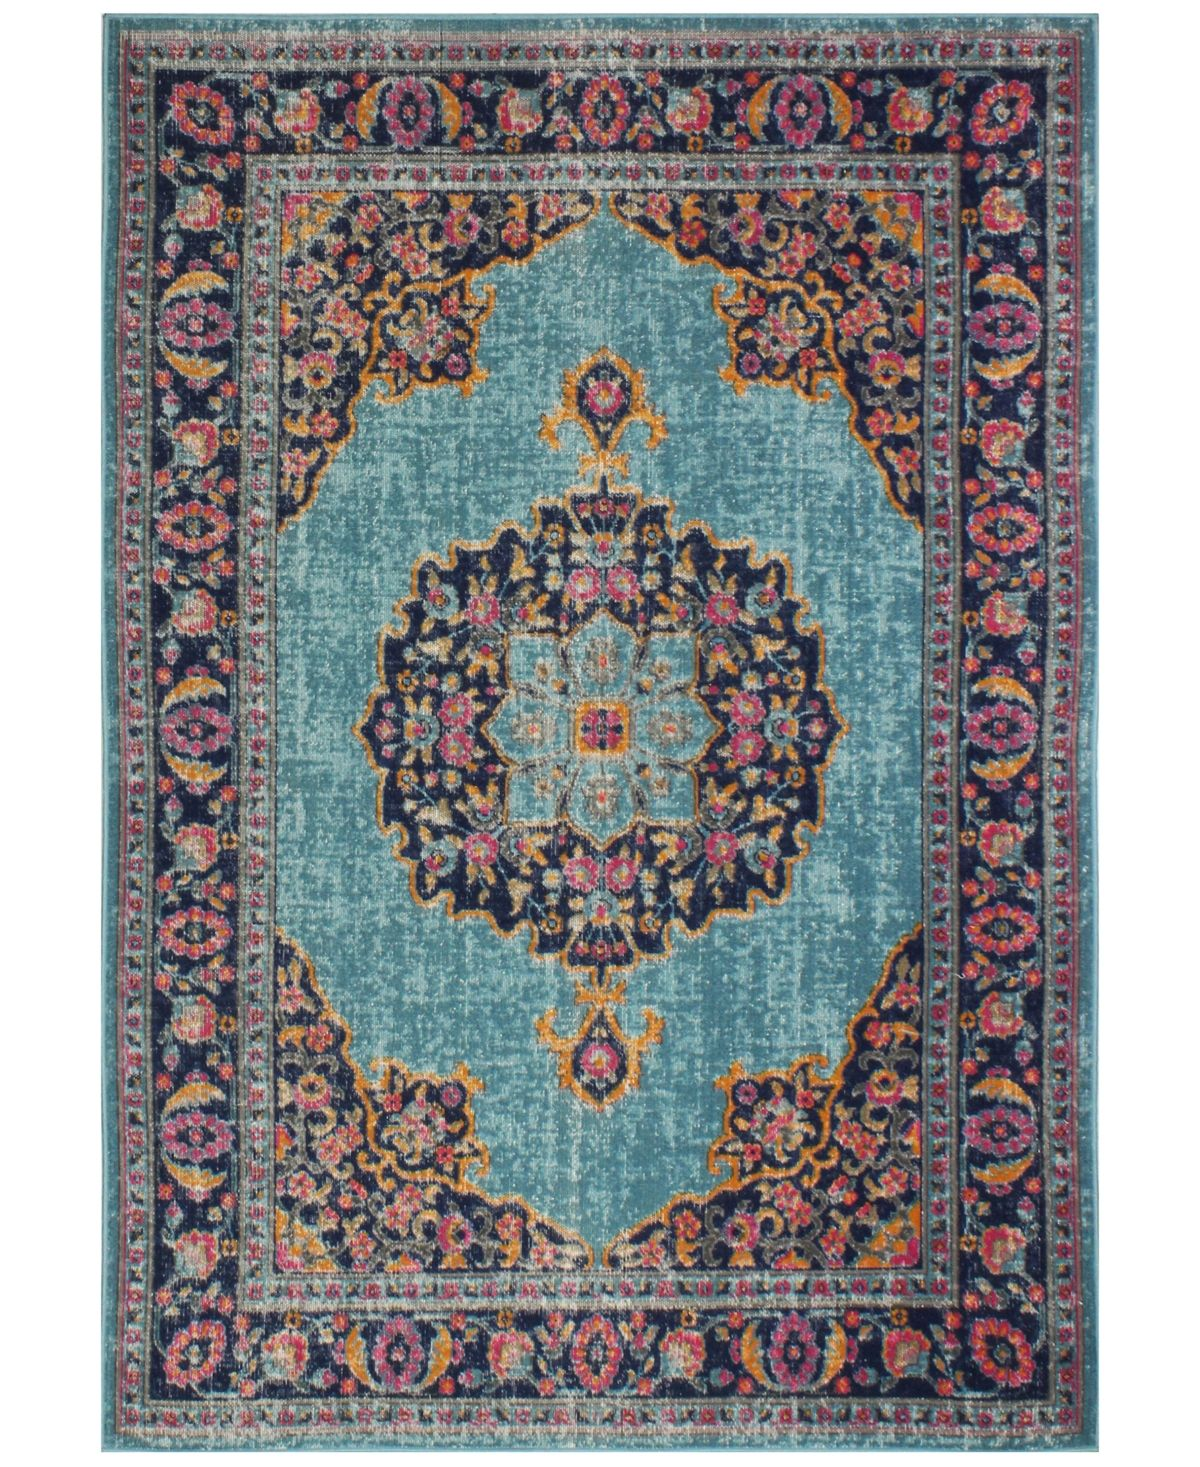 Bb Rugs Closeout Alexa Alx 40 8 7 X 11 6 Area Rug Reviews Rugs Macy S Area Rugs Rugs Rugs Online